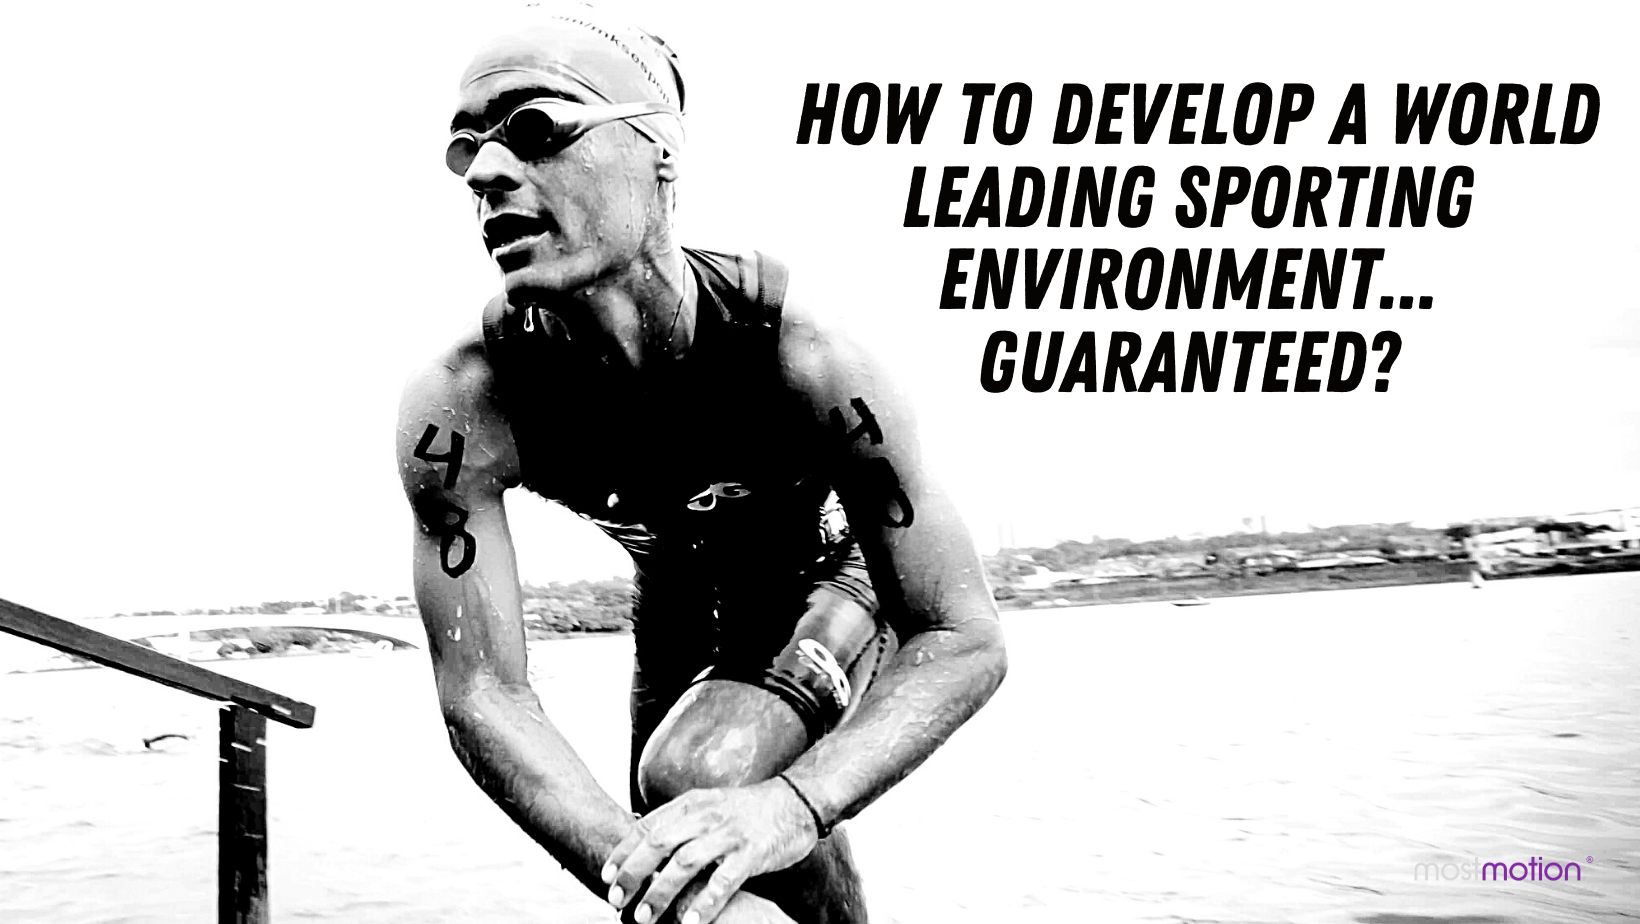 How to Develop A World Leading Sporting Environment… Guaranteed?